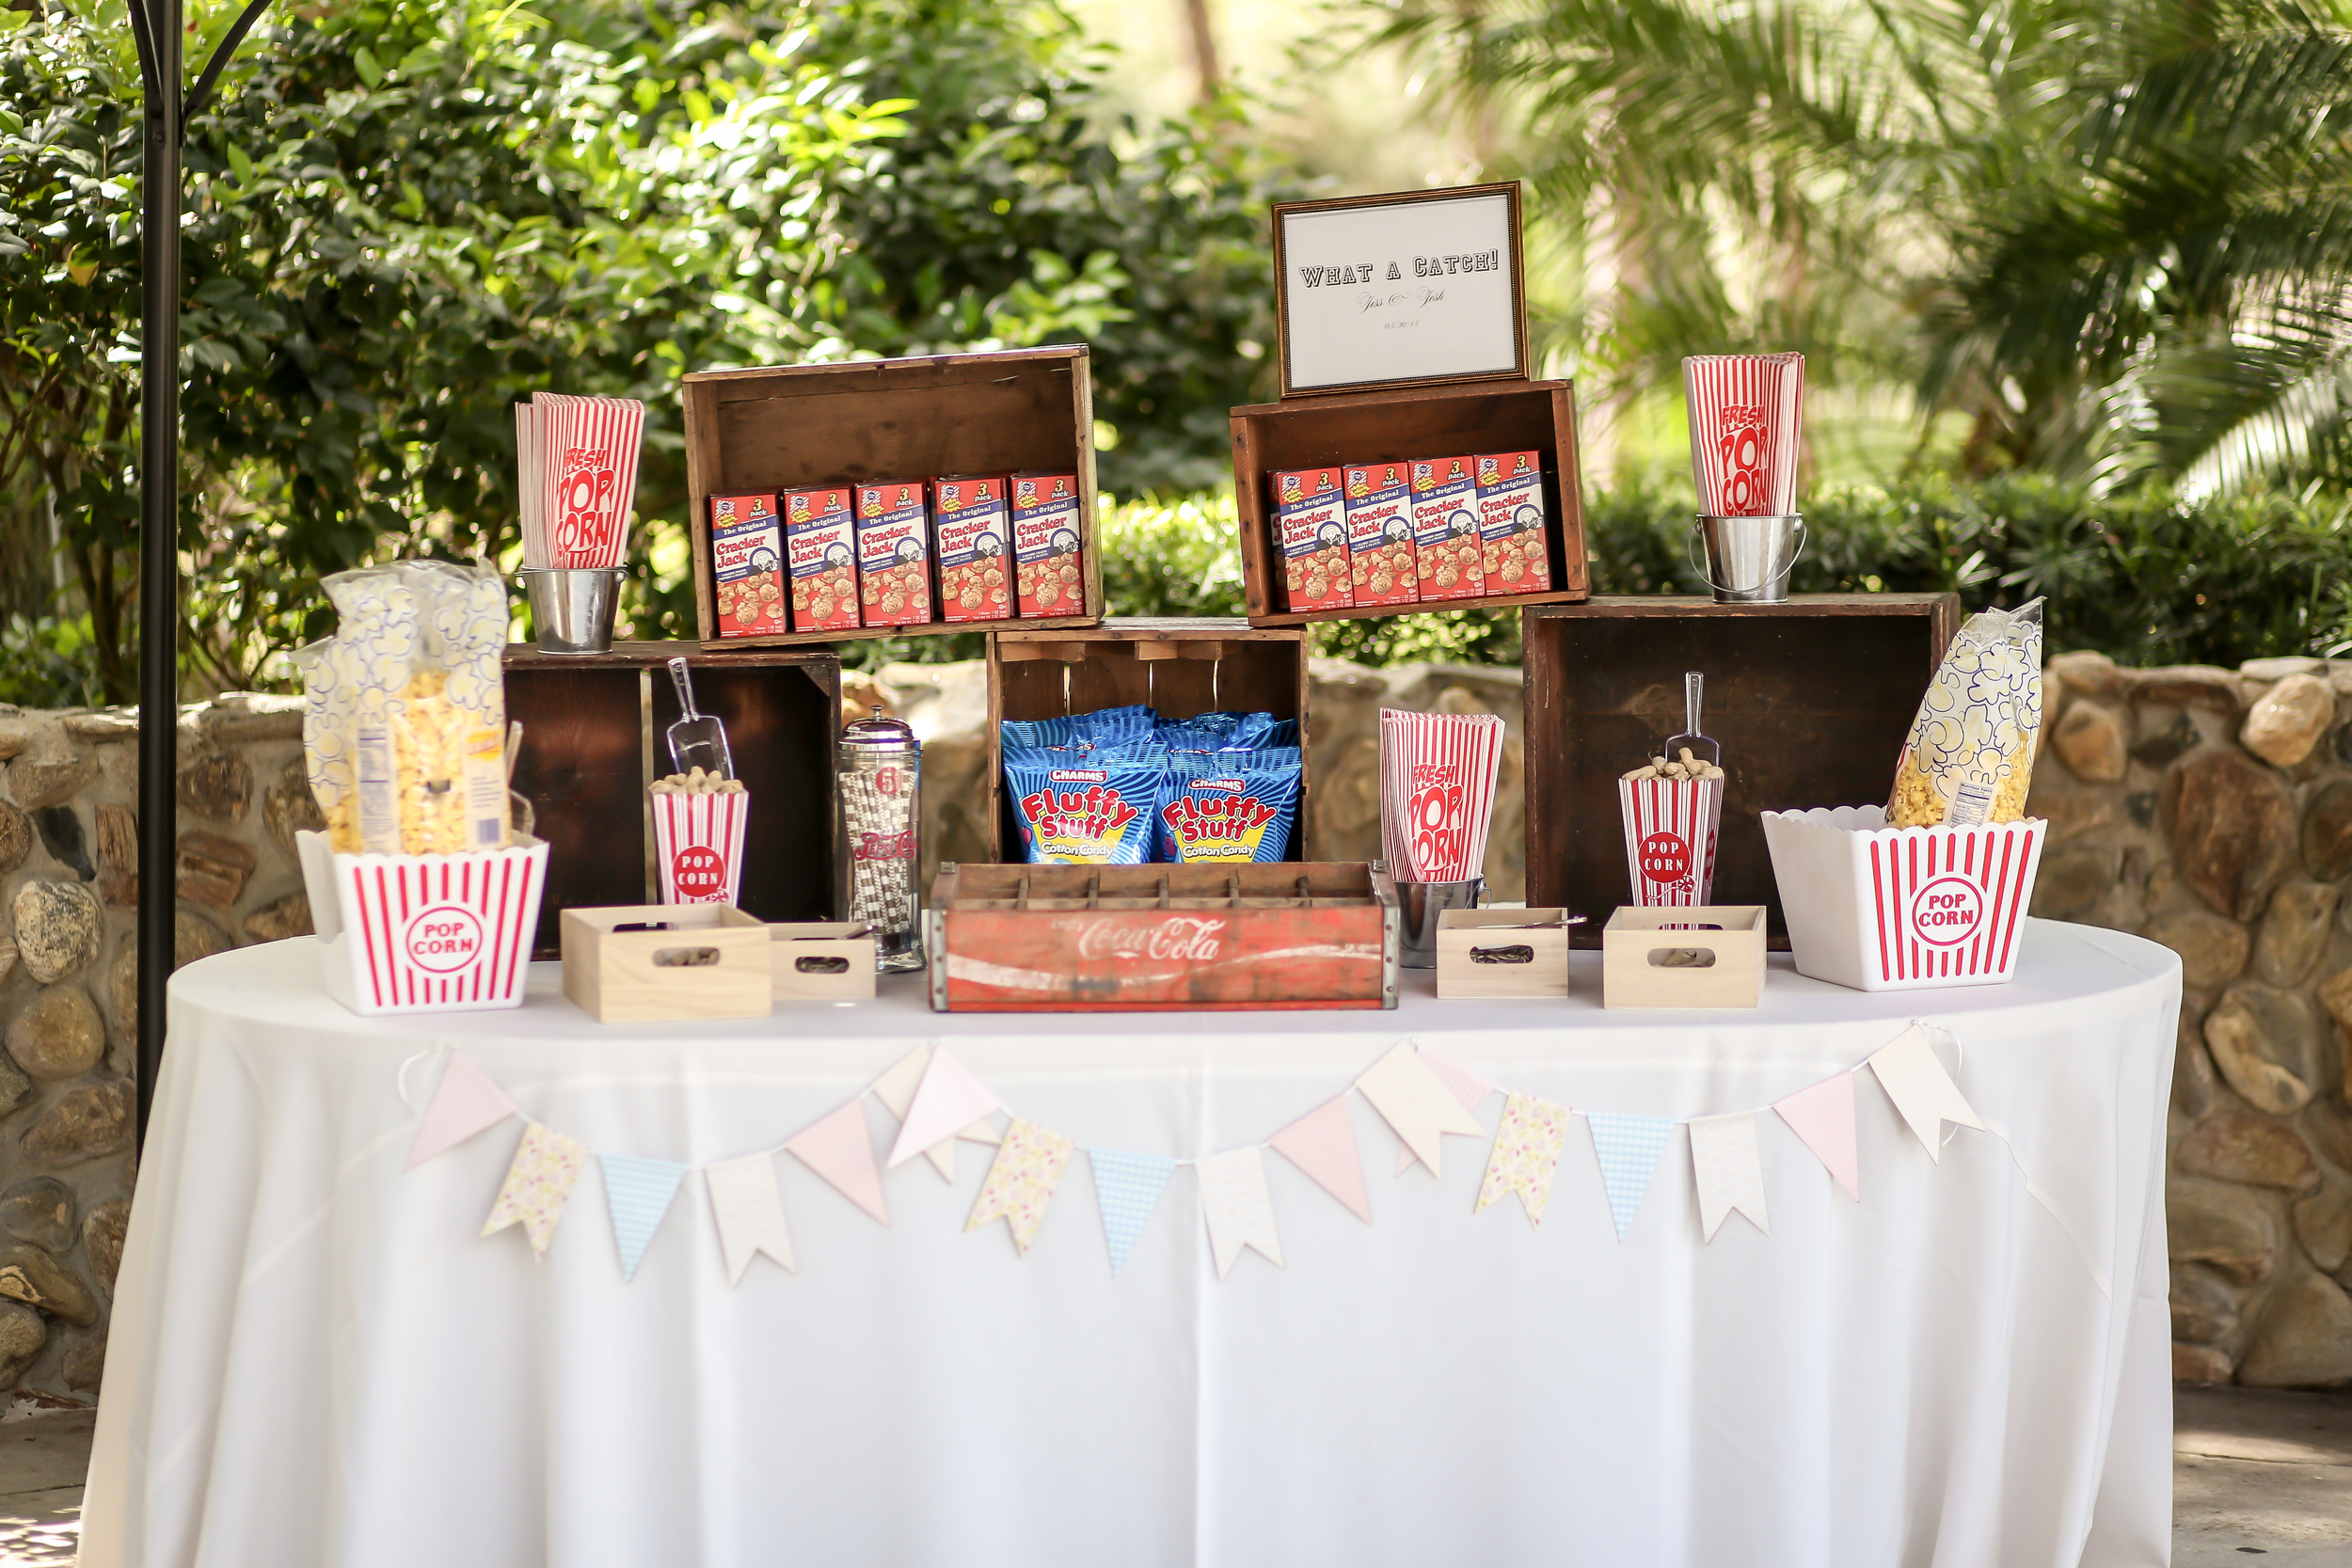 As a nod to the couple's first date, a vintage-style concession stand offered baseball snack favorites